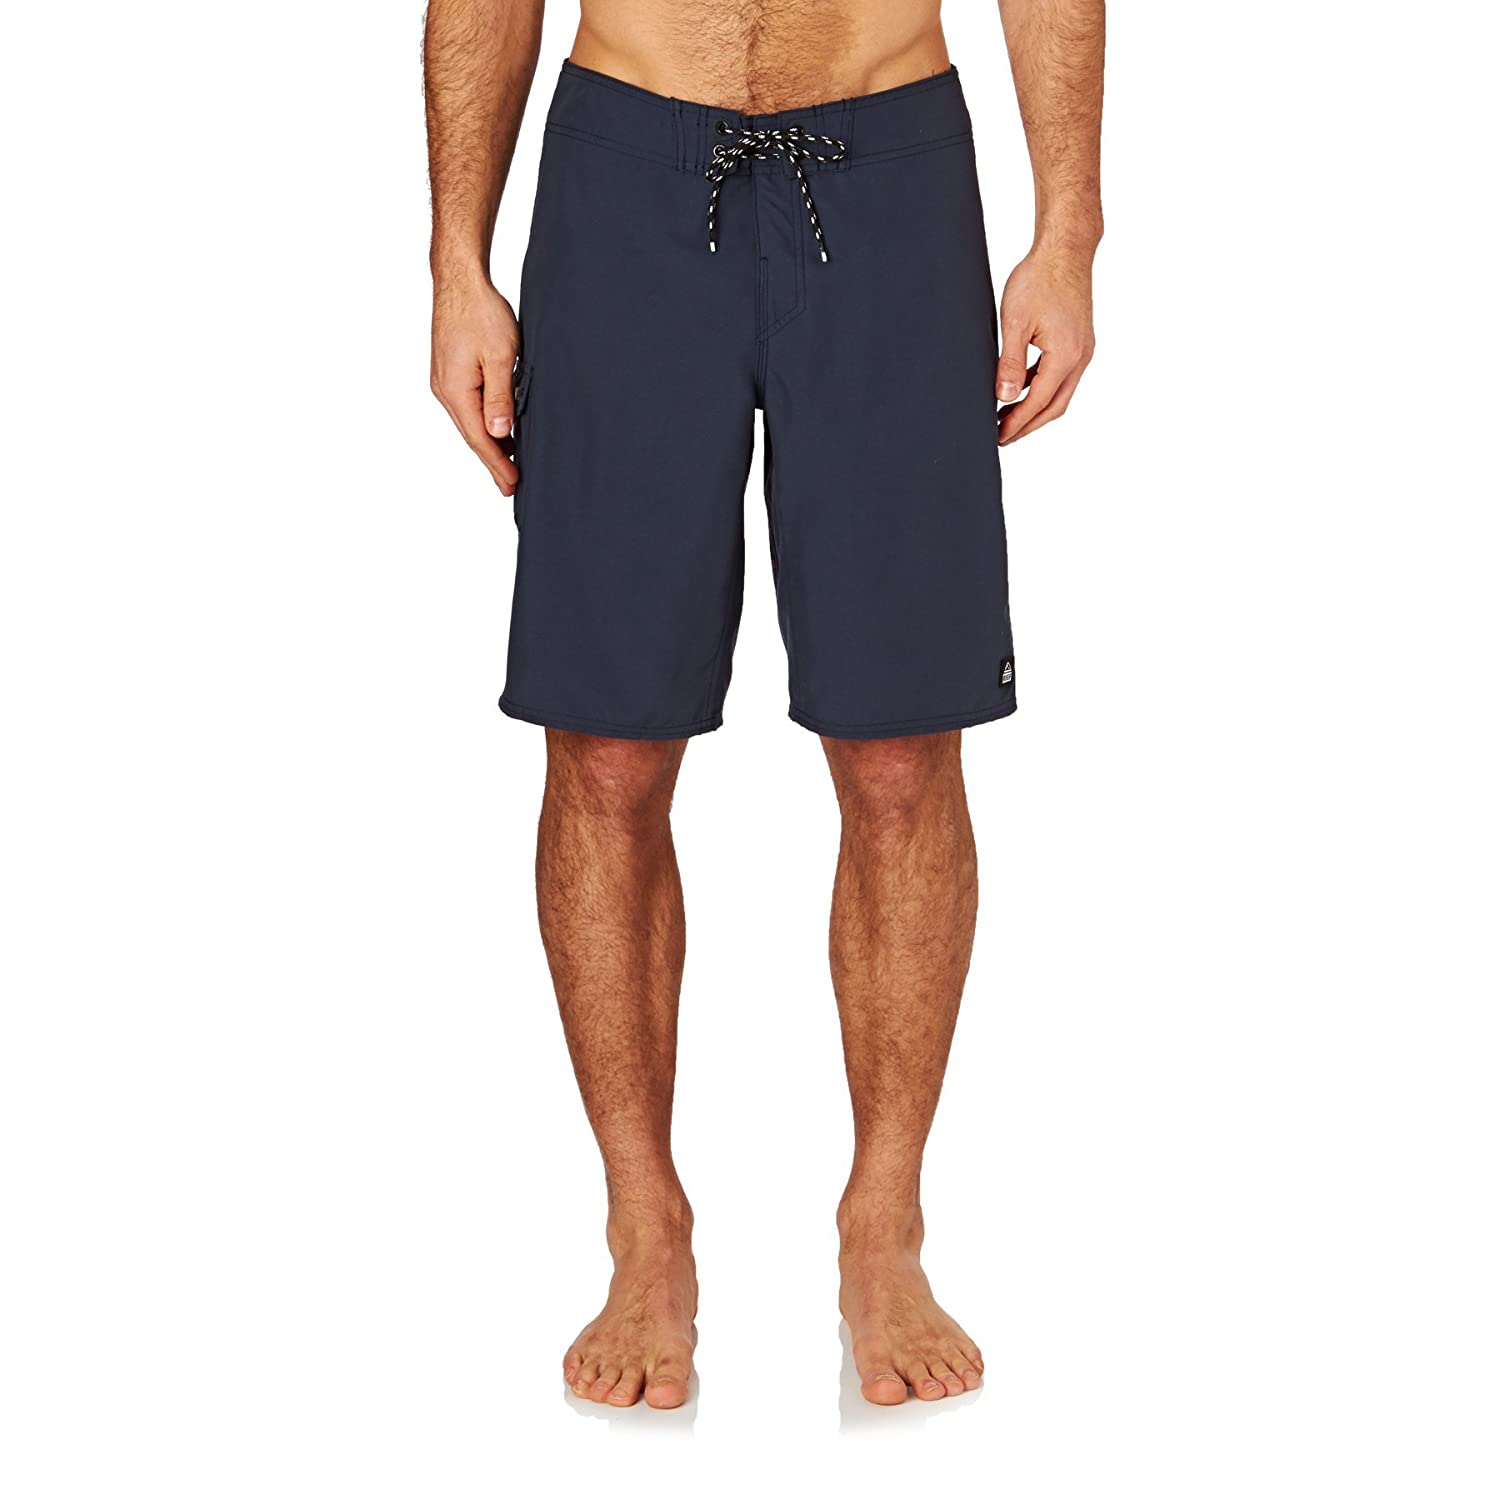 Reef Men's Lucas Board Shorts